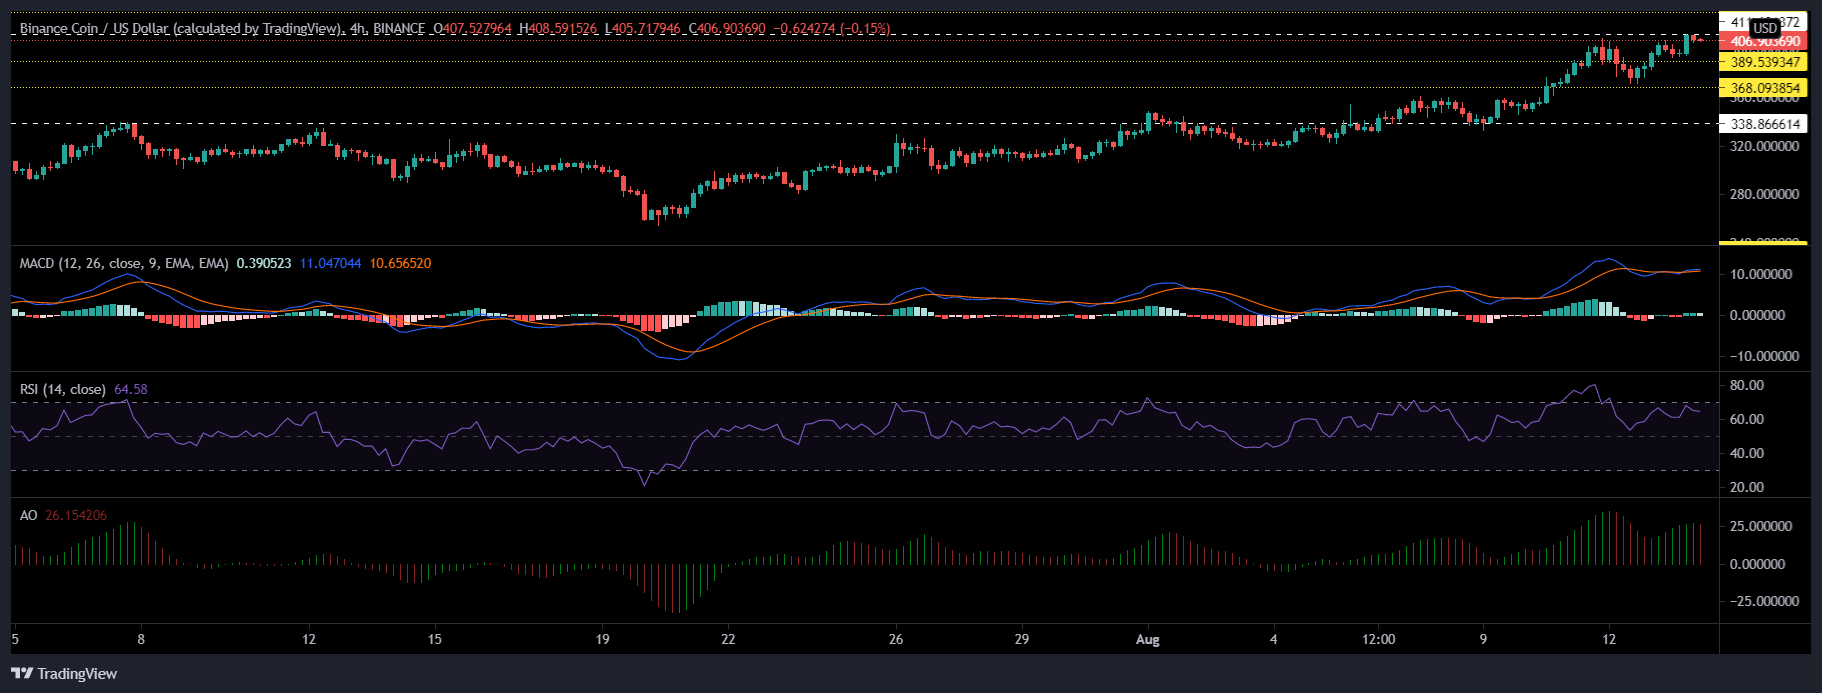 Ethereum, Binance Coin and Bitcoin Price Analysis: August 14